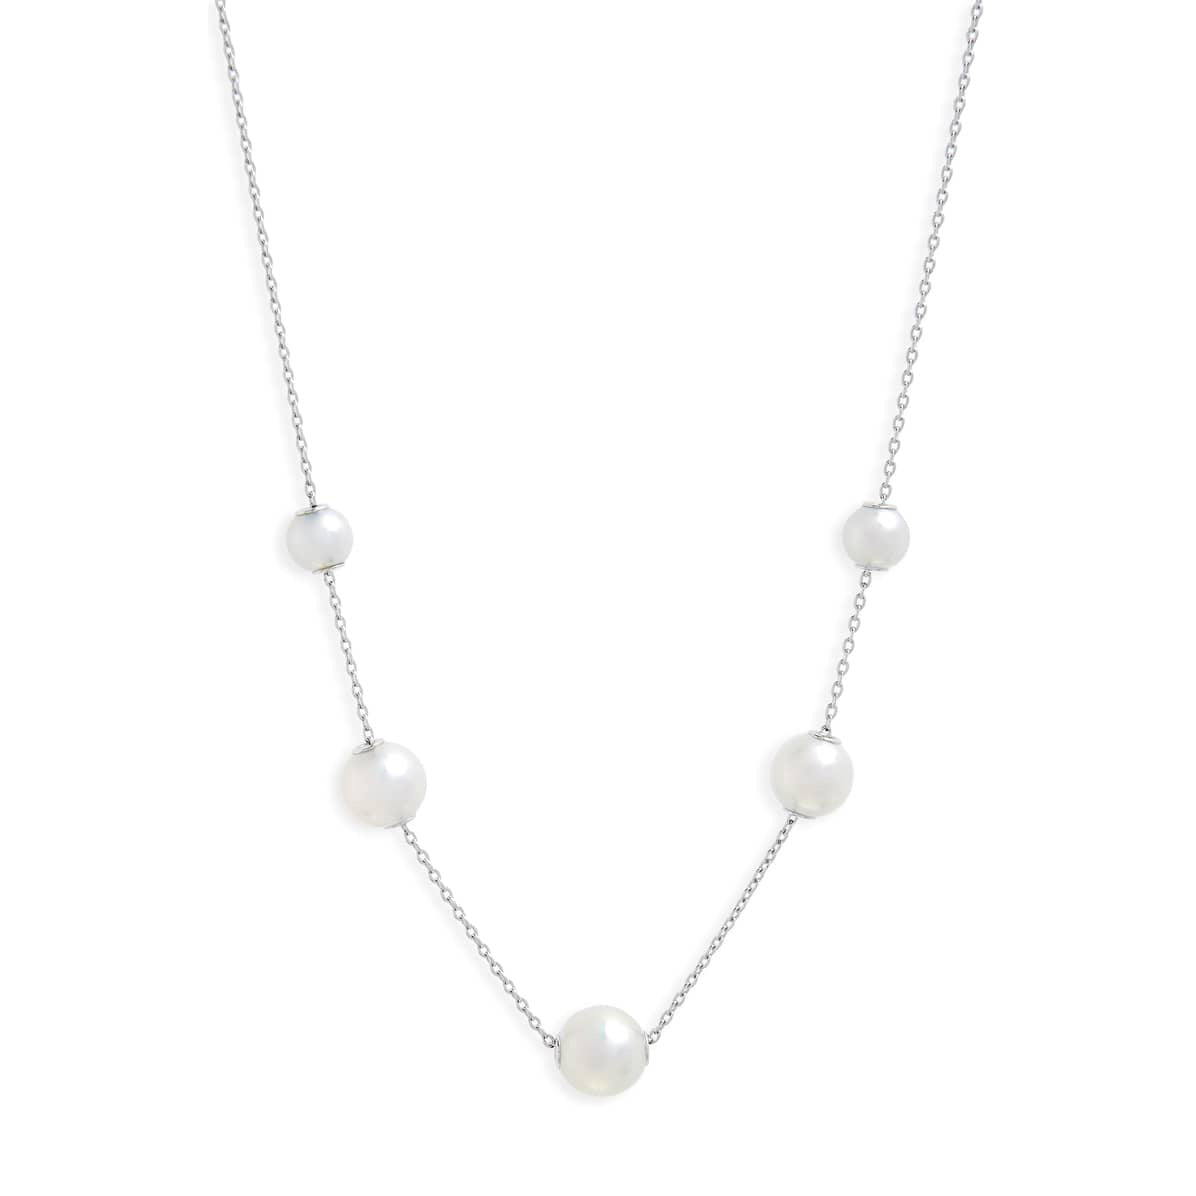 Mikimoto 7.5mm Graduated Akoya Pearls in Motion Necklace